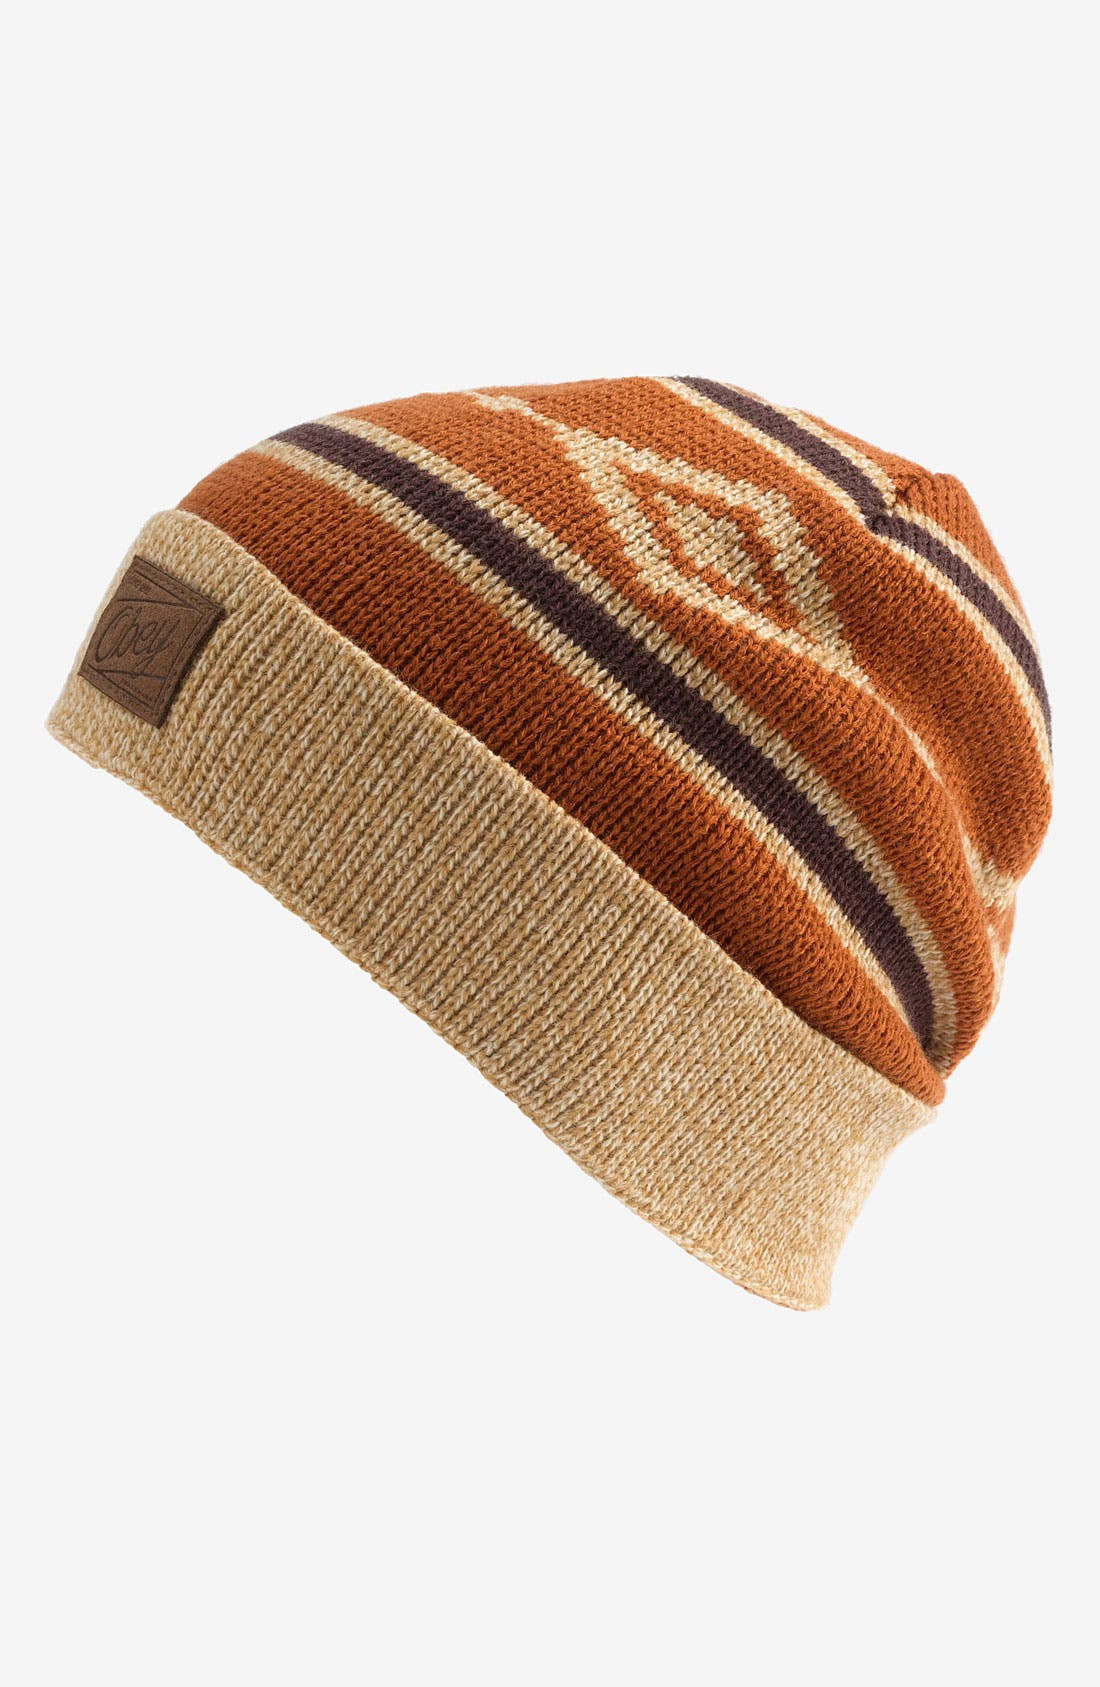 Alternate Image 1 Selected - Obey 'Aztec' Knit Cap